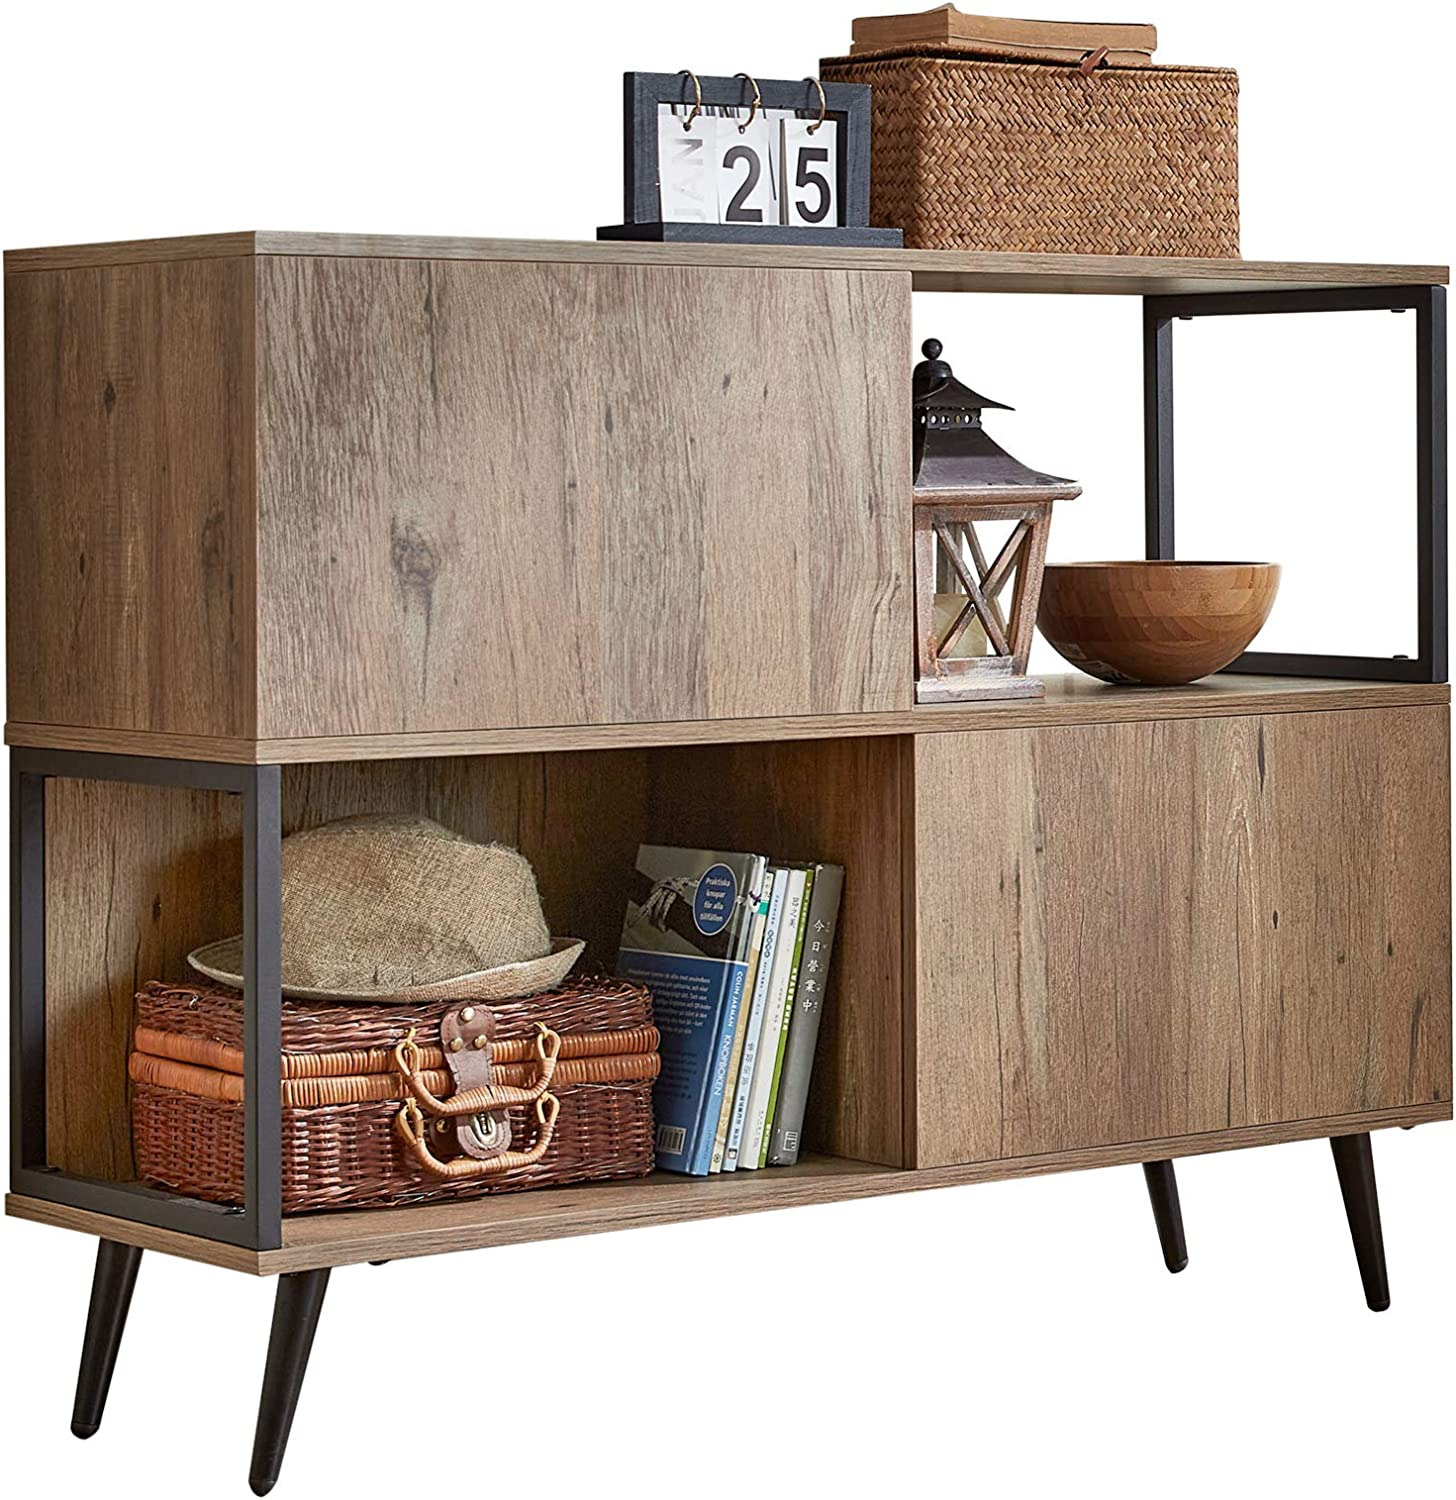 Mid-Century Console Table with Storage, Modern Wood Entryway Console Table with 2 Cabinet Doors Splayed Legs for Living Room, LS212N1-A